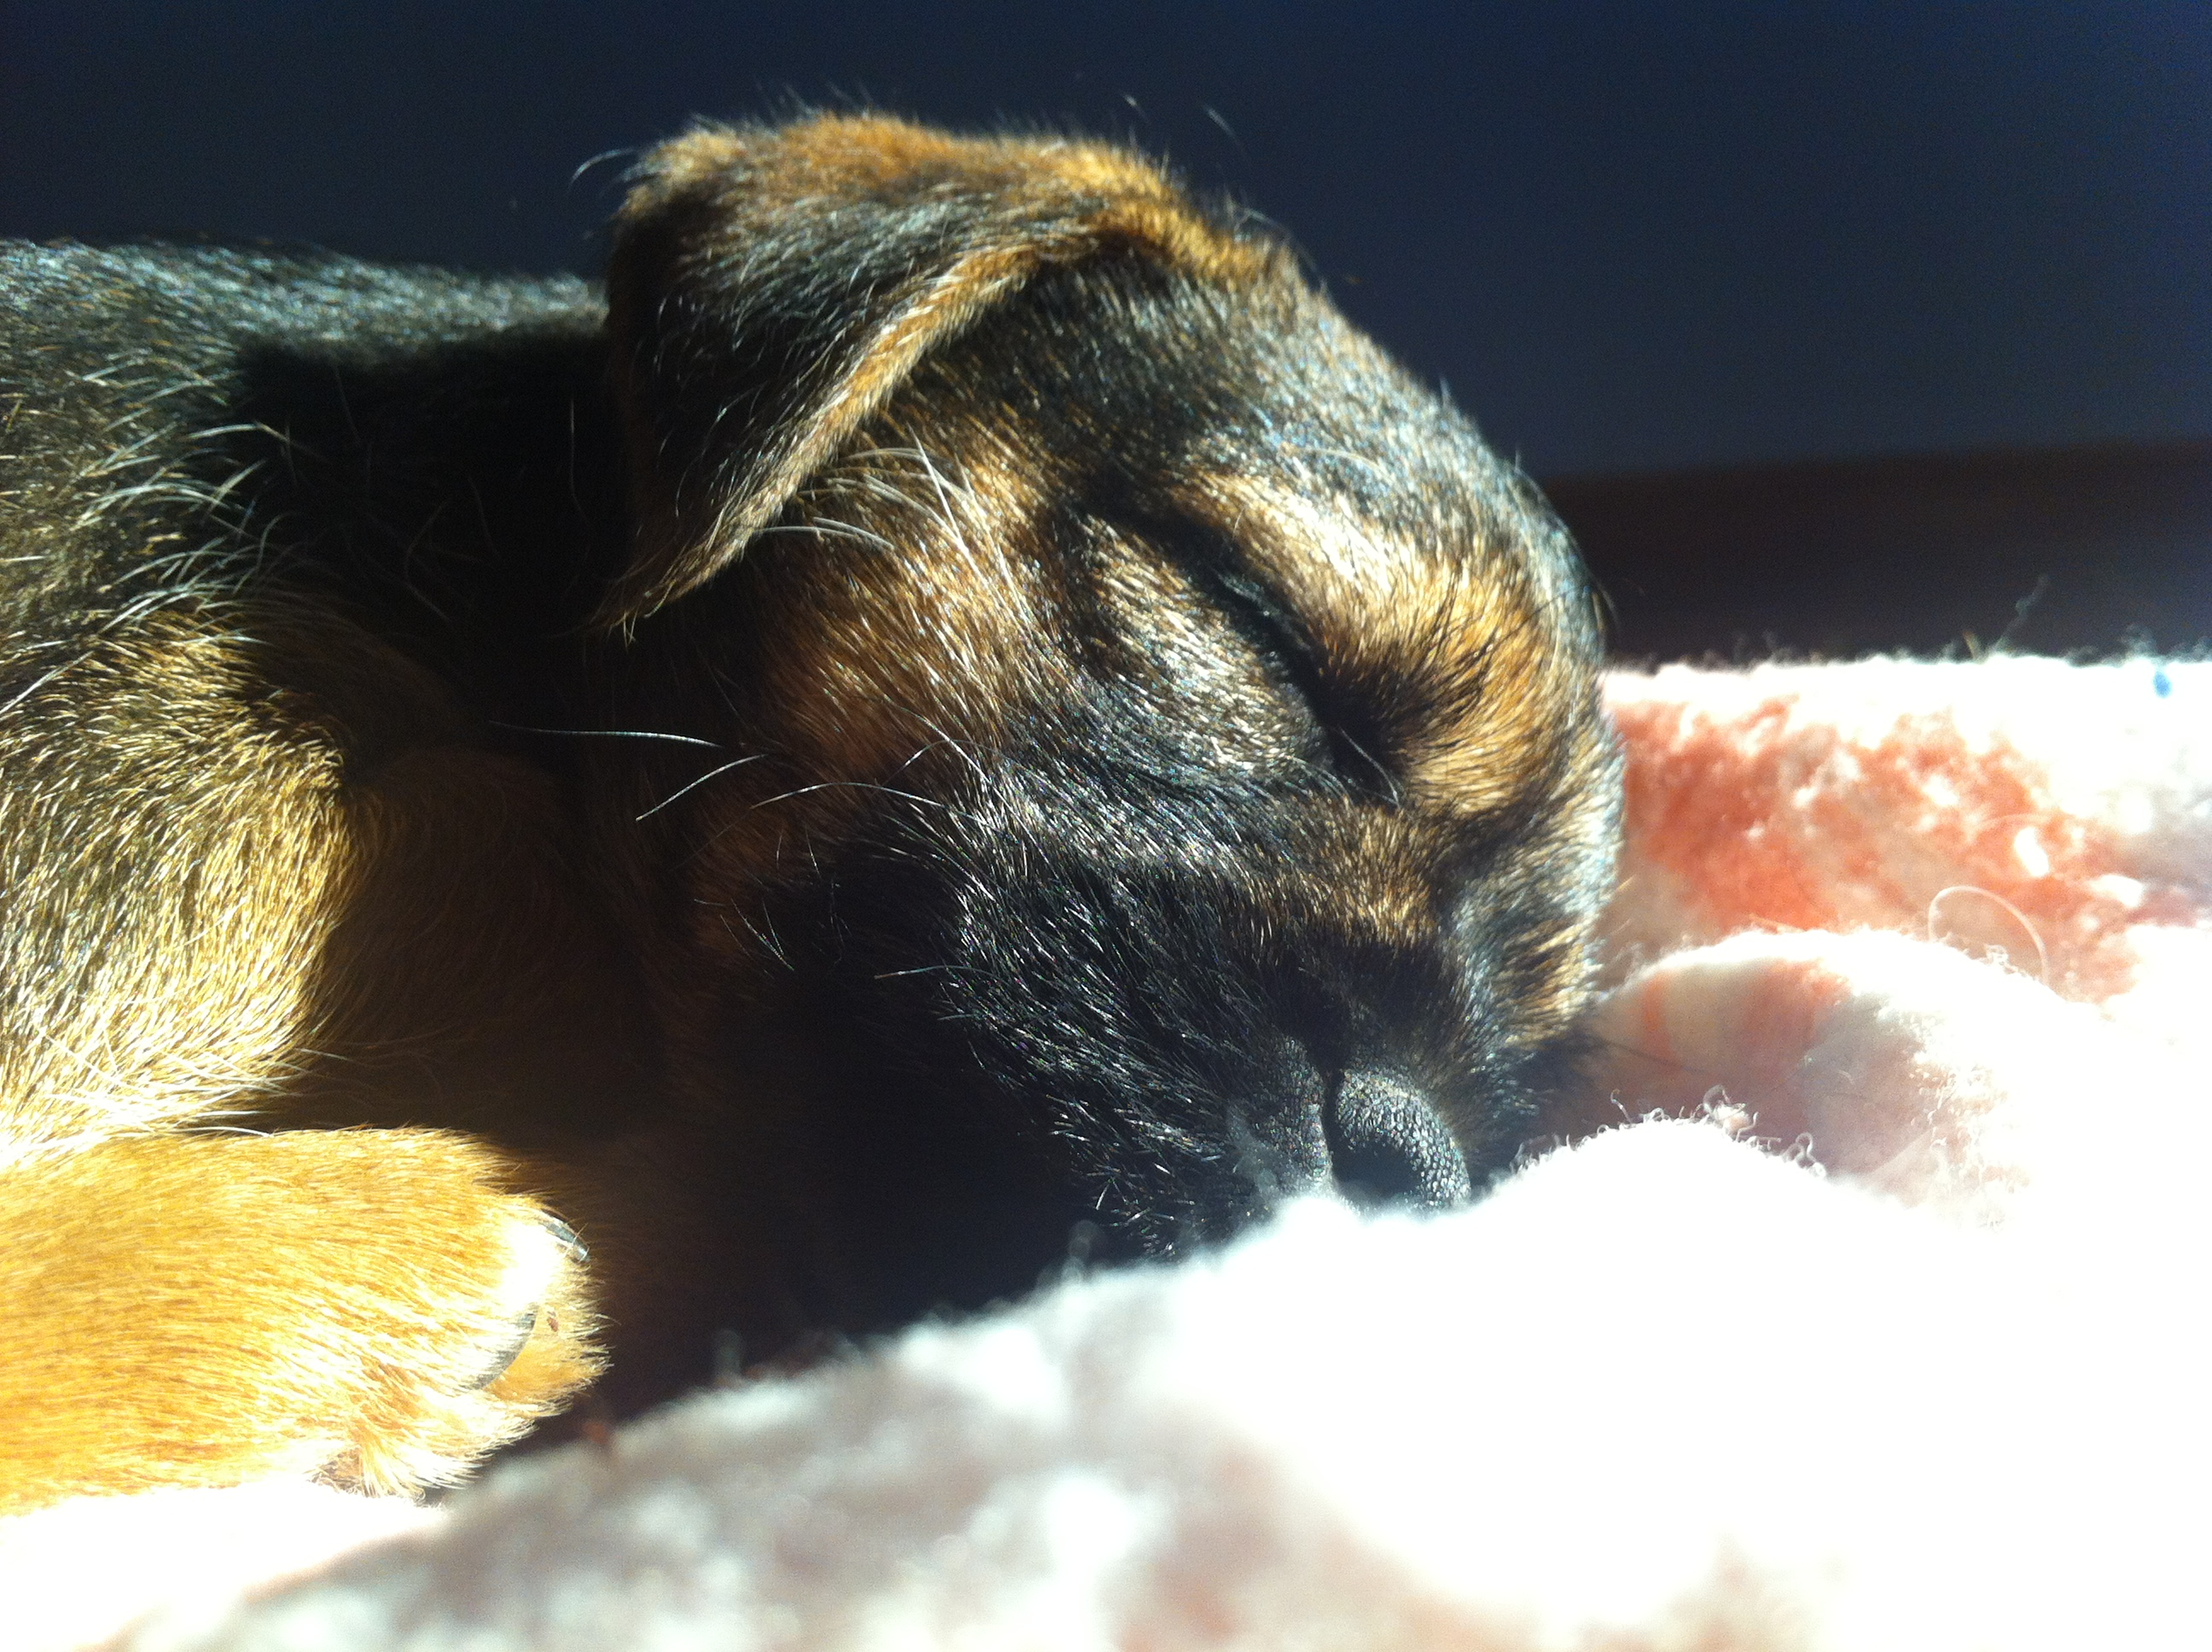 Sleeping border terrier puppy.